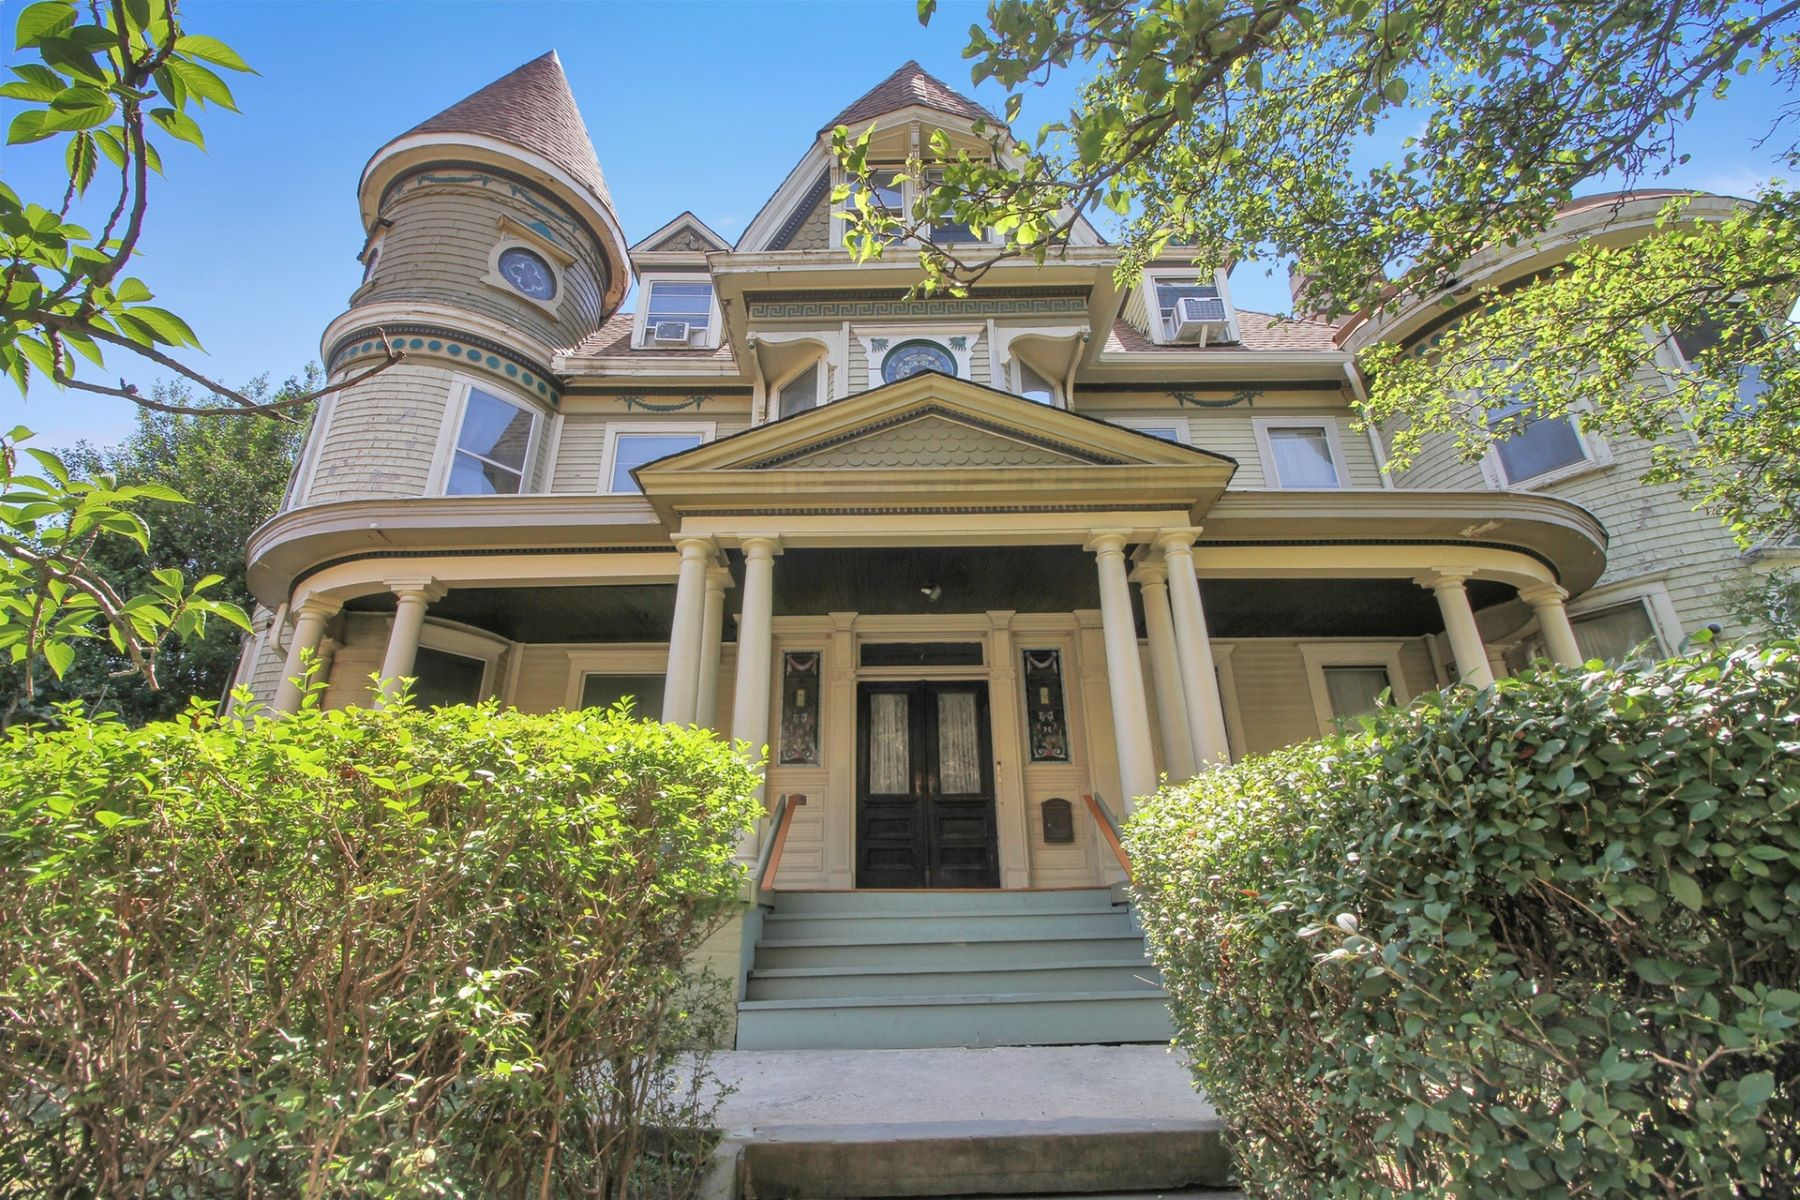 Multi-Family Home for Sale at Grand Victorian Mansion 7 Kensington Ave, Jersey City, New Jersey 07304 United States